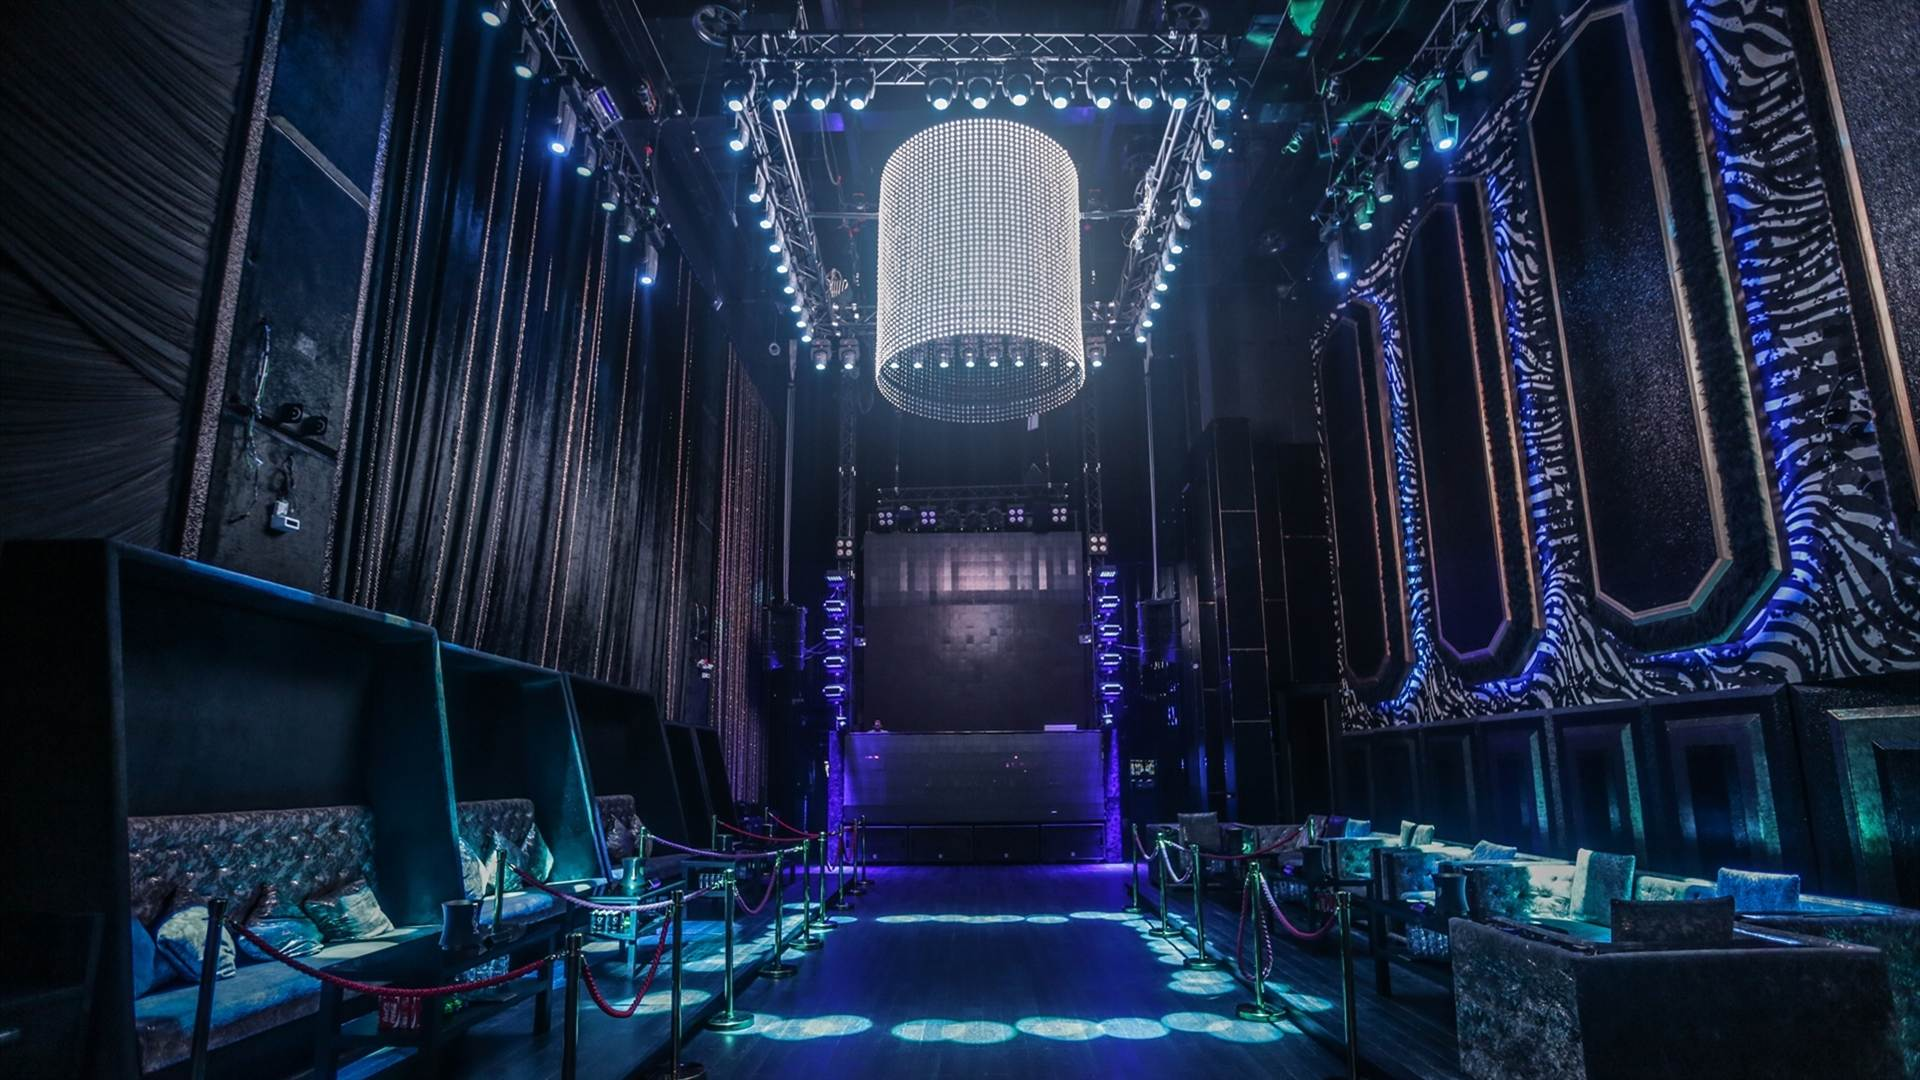 Playboy is one of the top clubs in Mumbai